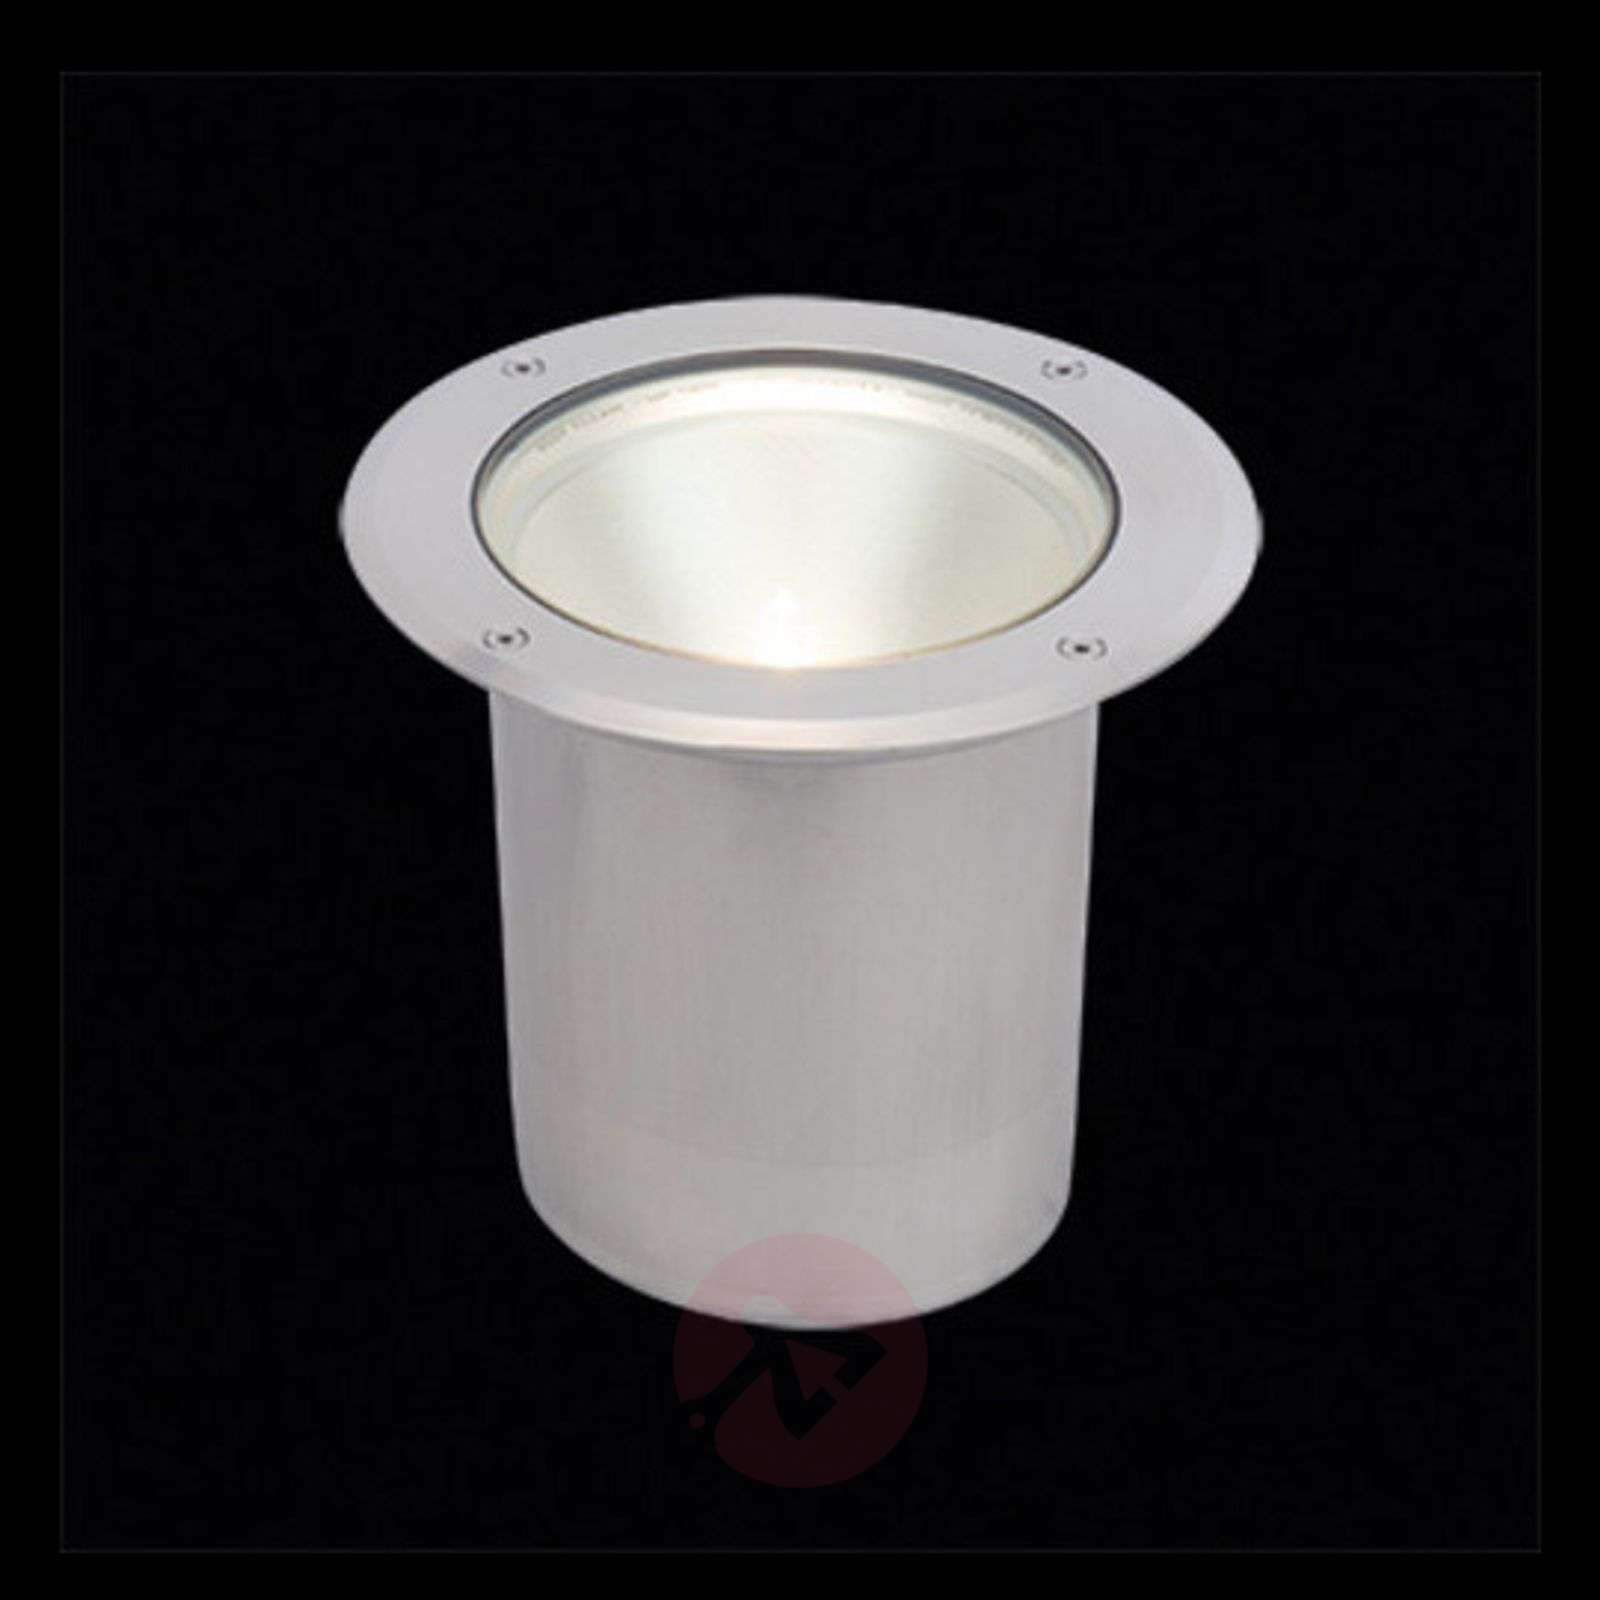 Large recessed floor light MAXI IDRA, G8.5-1002148-01